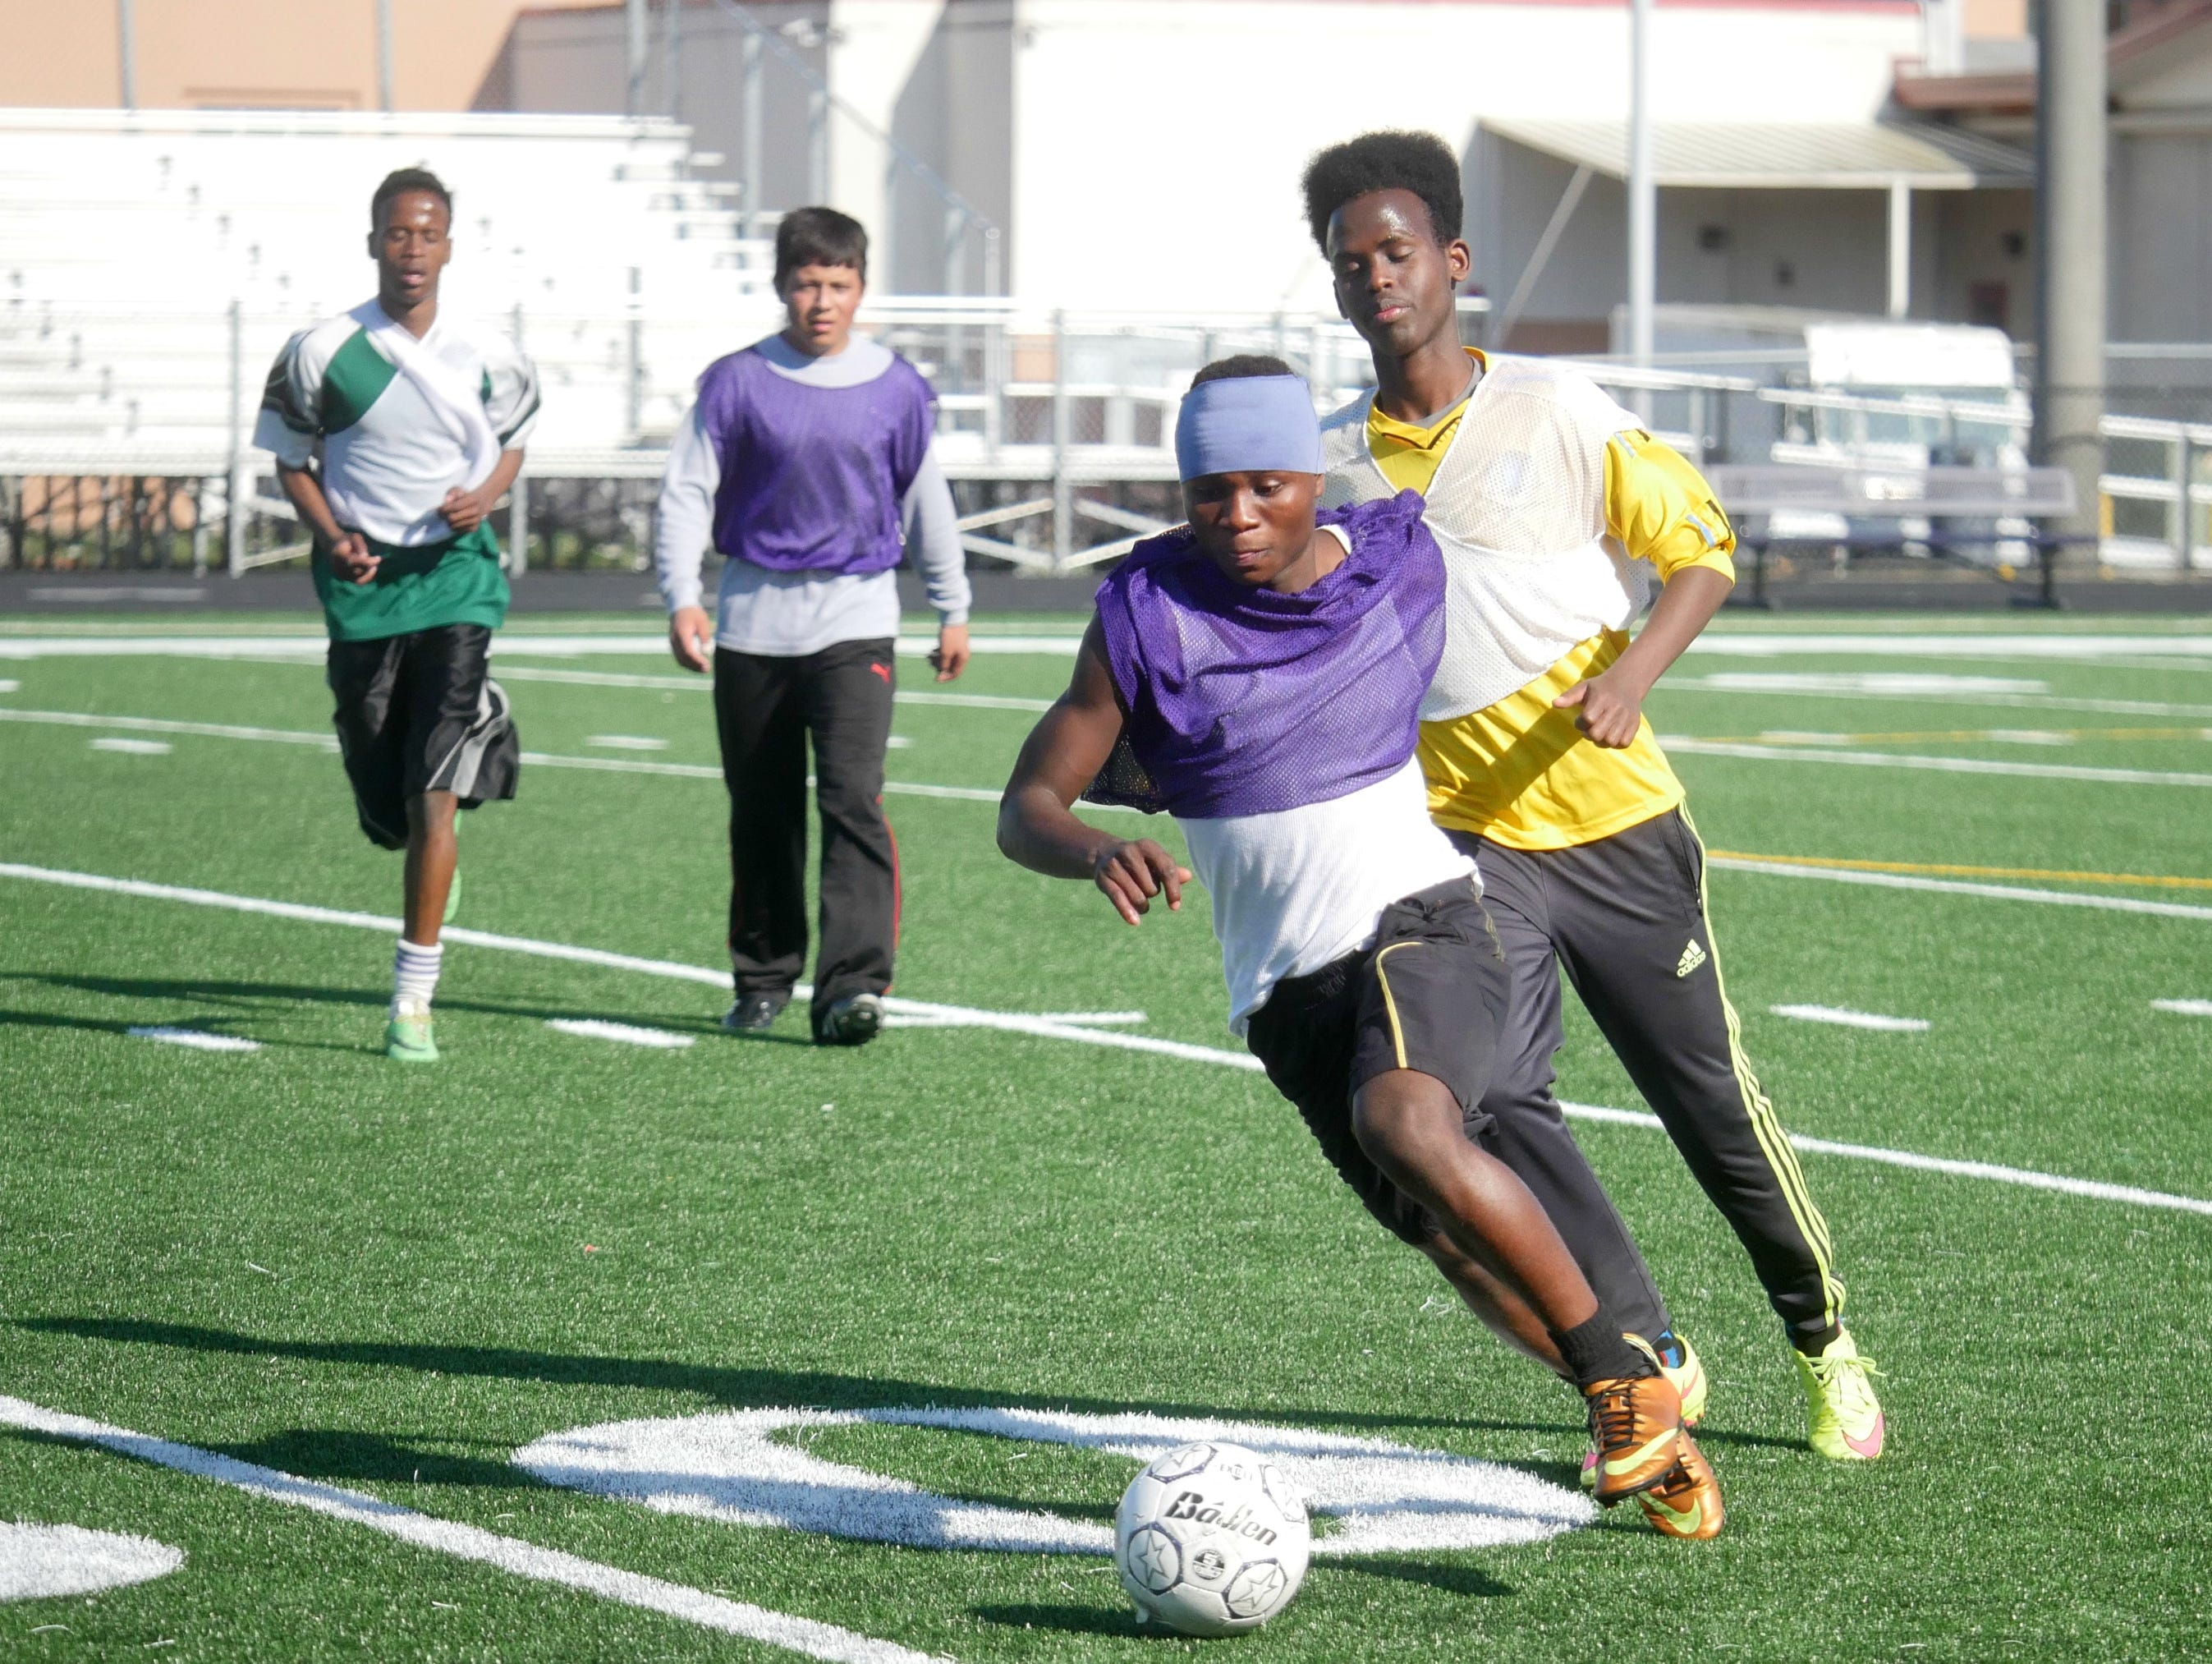 Foster's Desire Katameya dribbles down the field during a scrimmage at practice.